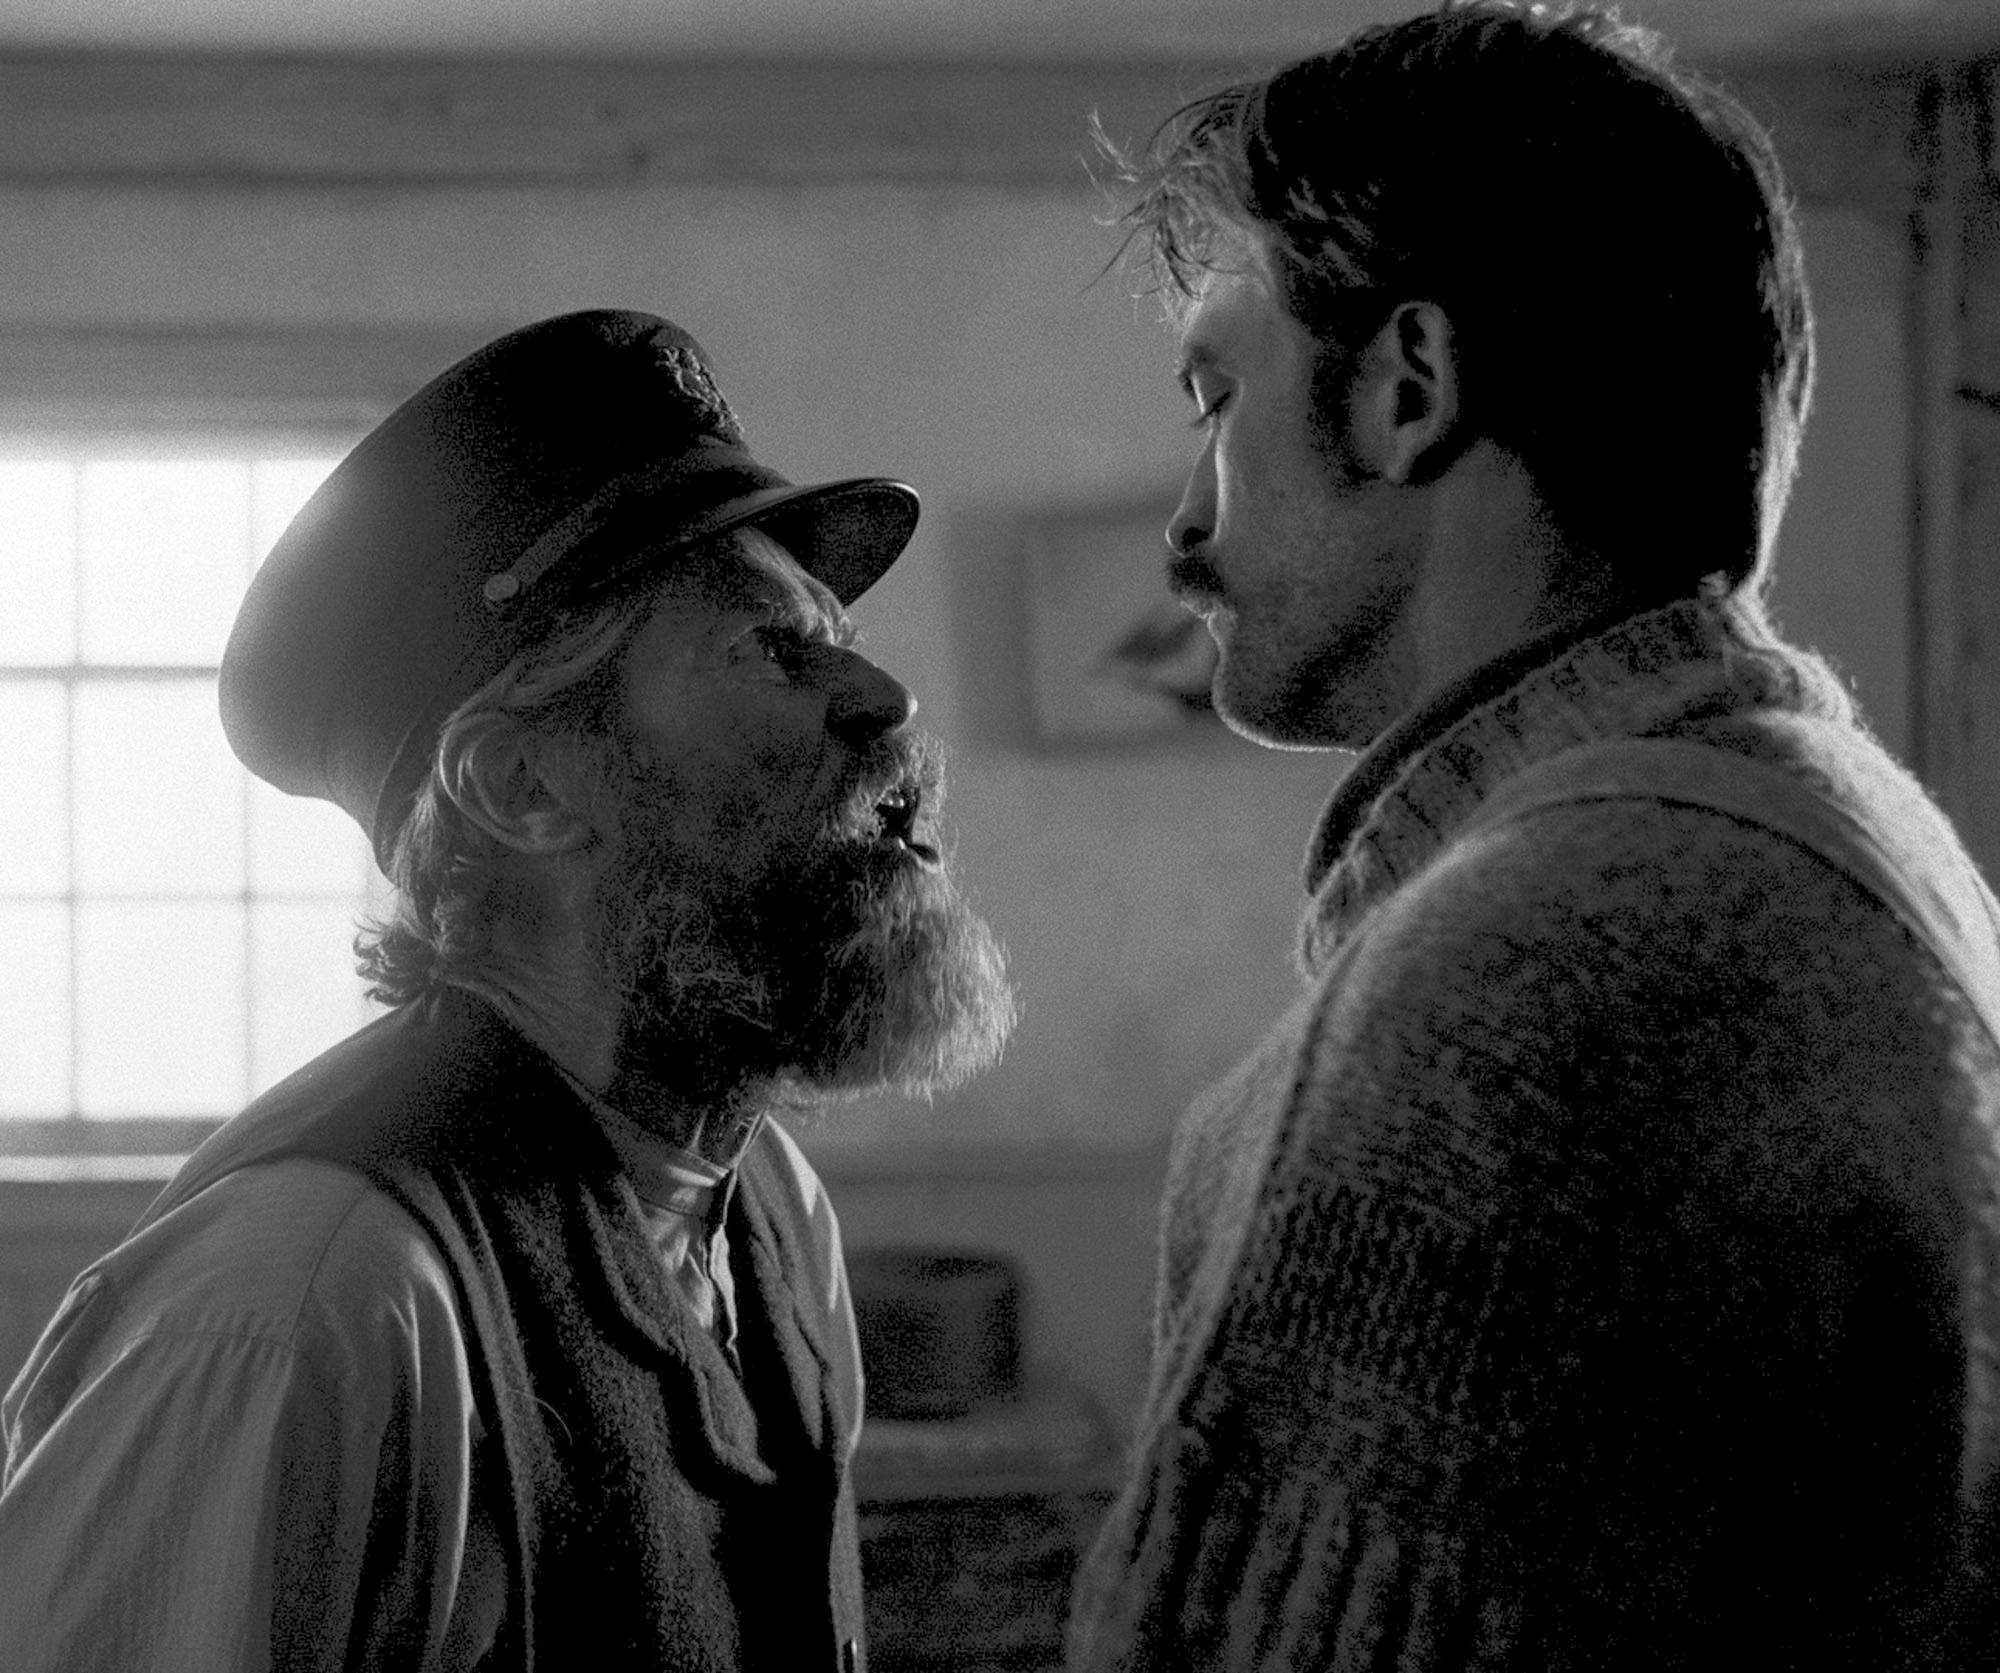 Robert Pattinson and Willem Dafoe on making 'The Lighthouse,' the strangest movie of the year